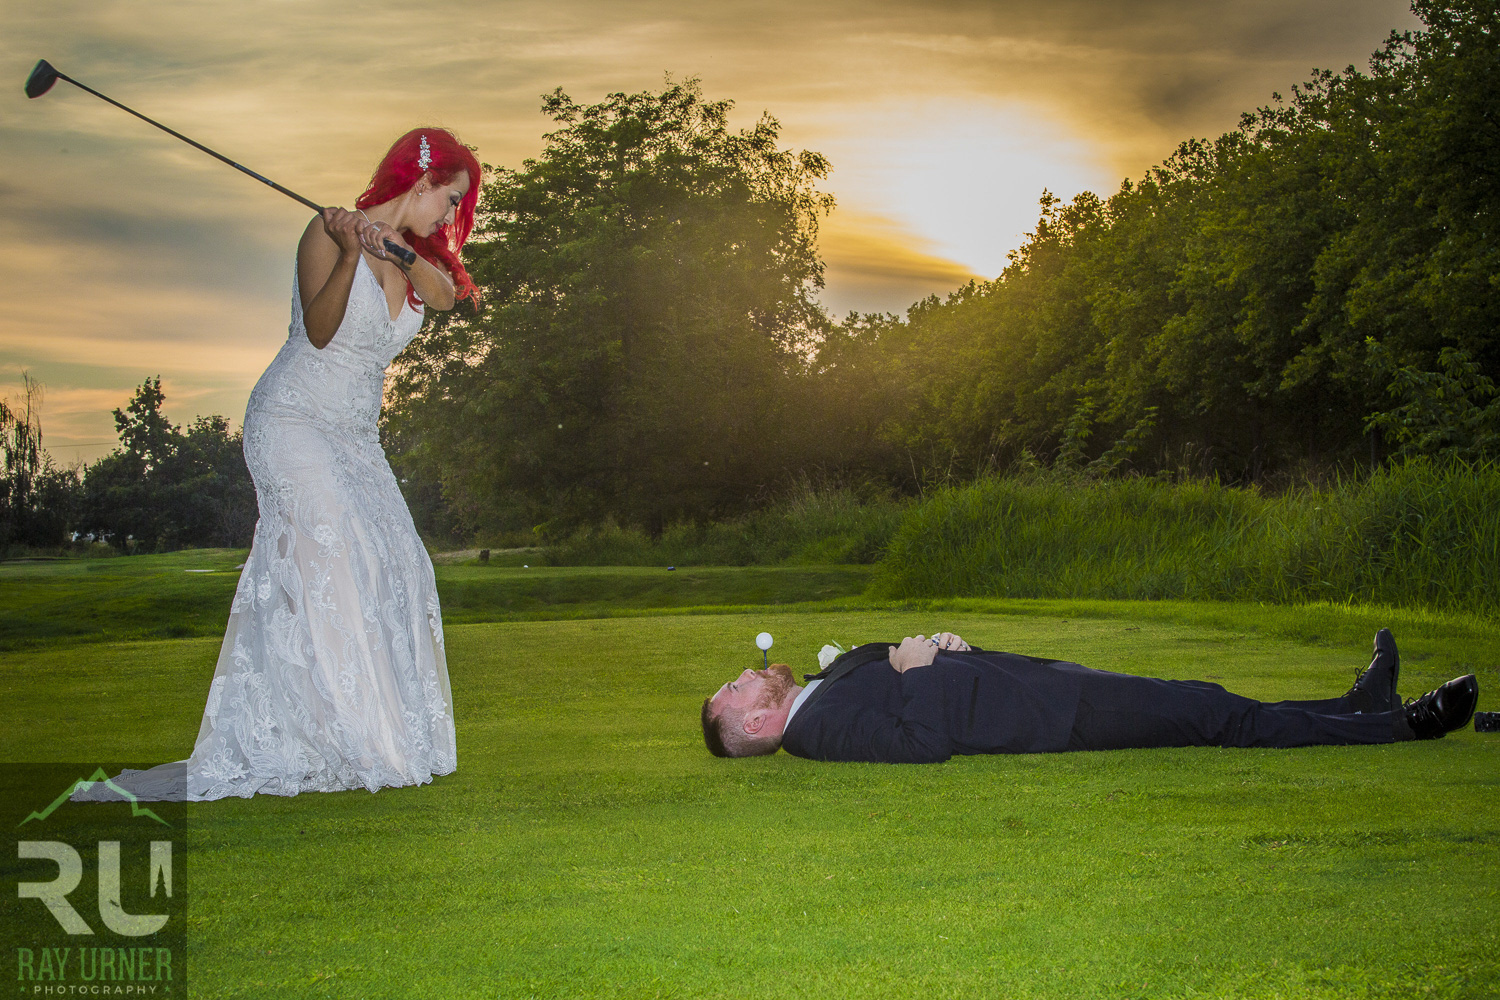 Iva and Kyle - Two golf nuts tie the knot!